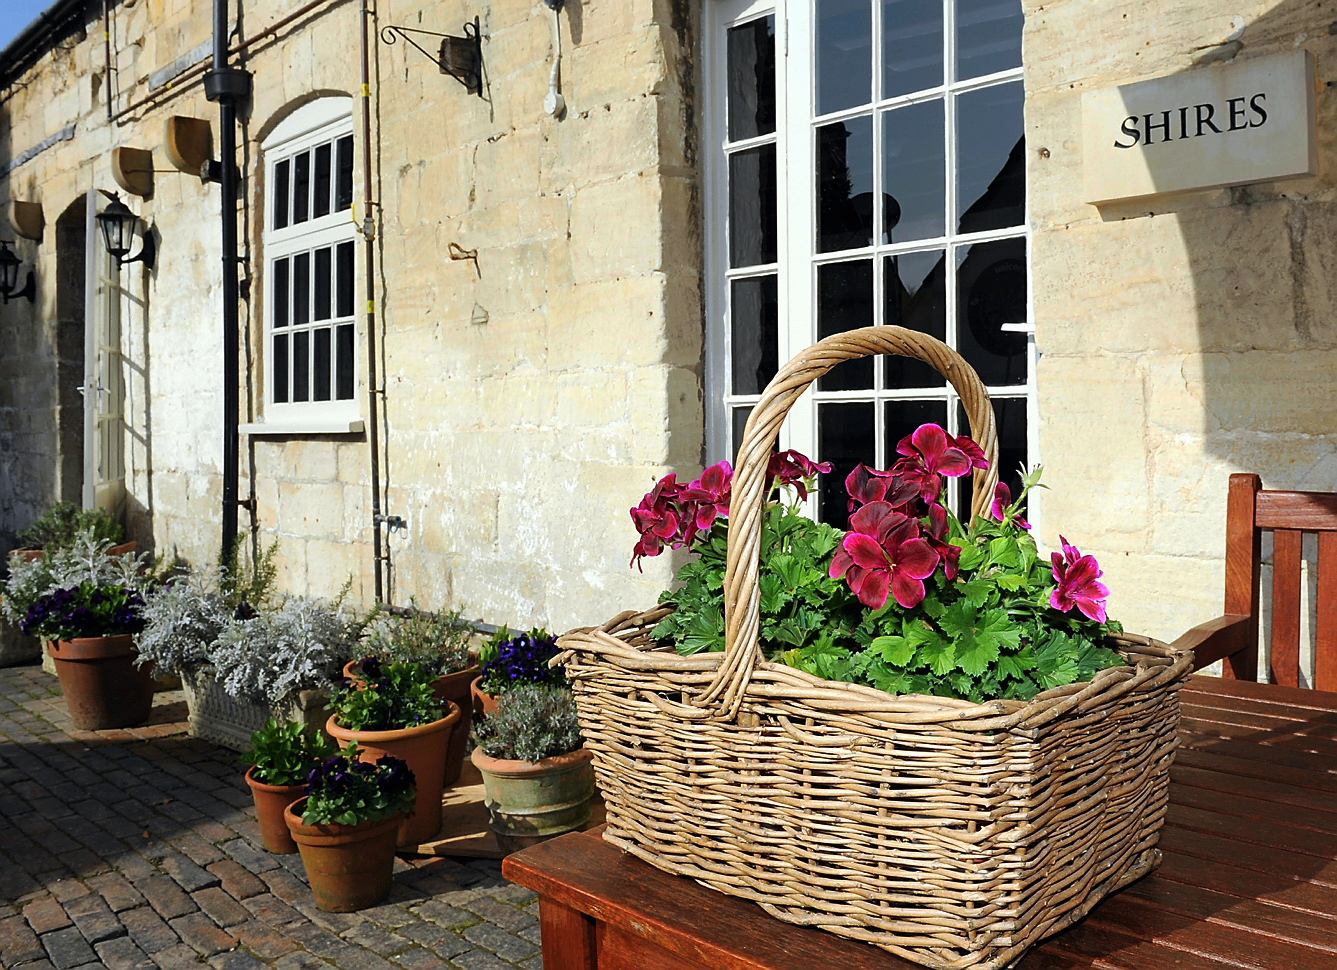 The Charming Falcon Painswick In The Idyllic Cotswolds